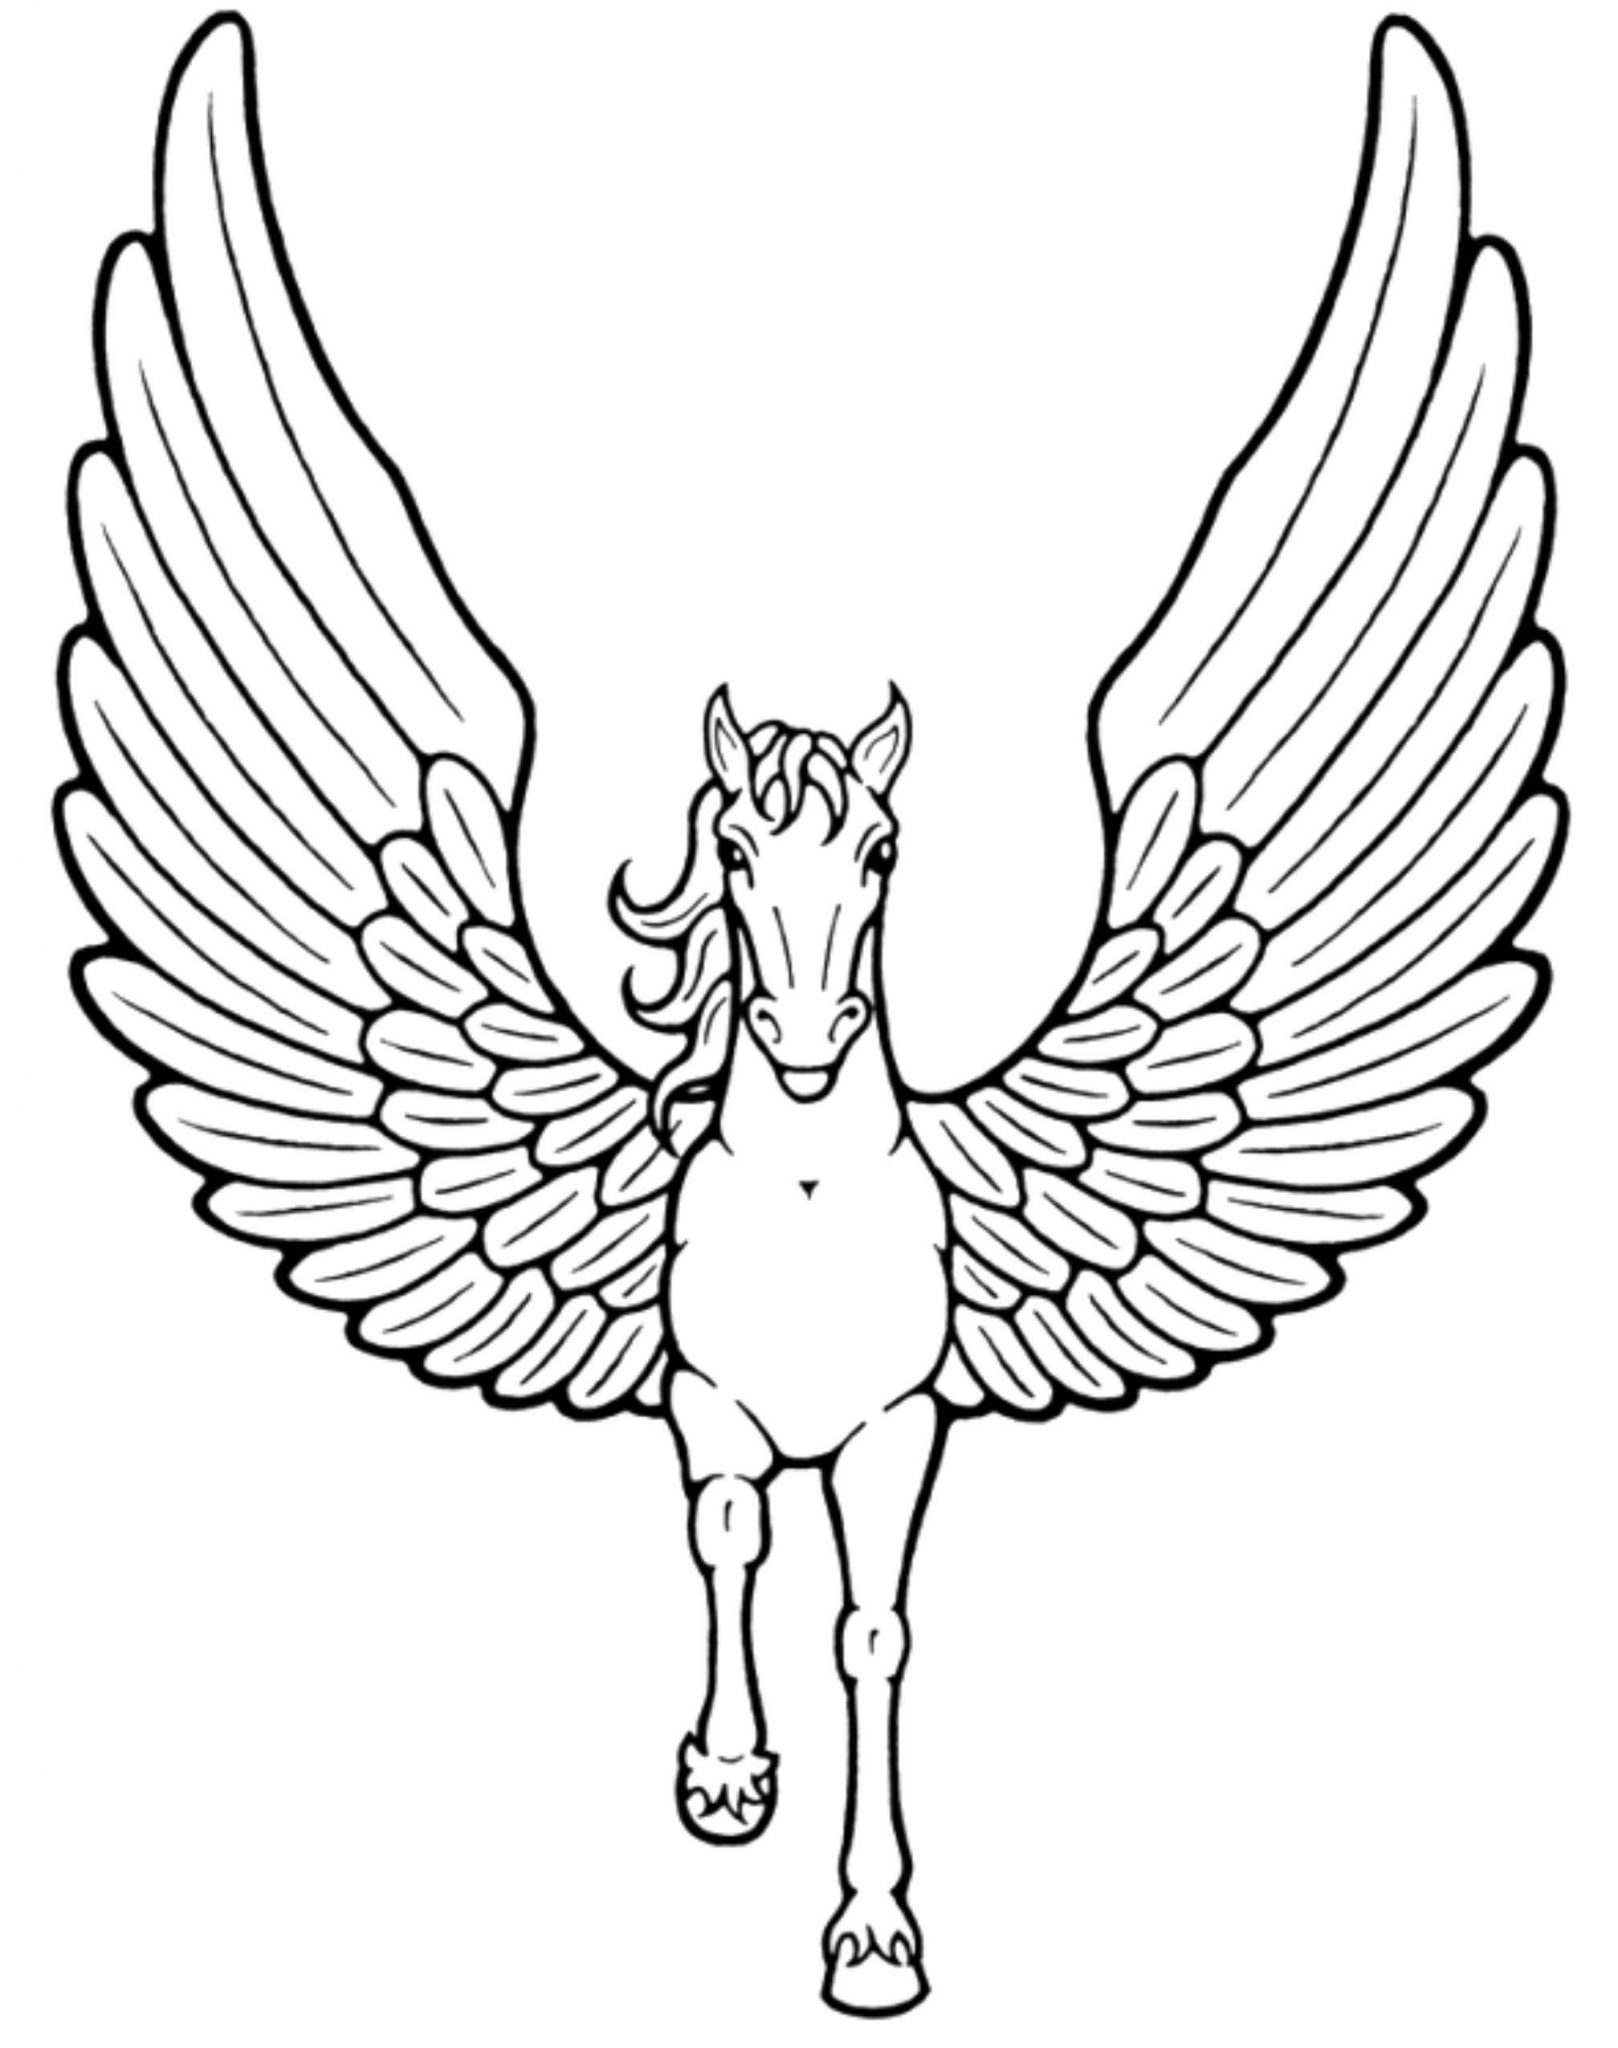 Preschool Unicorn Coloring Pages